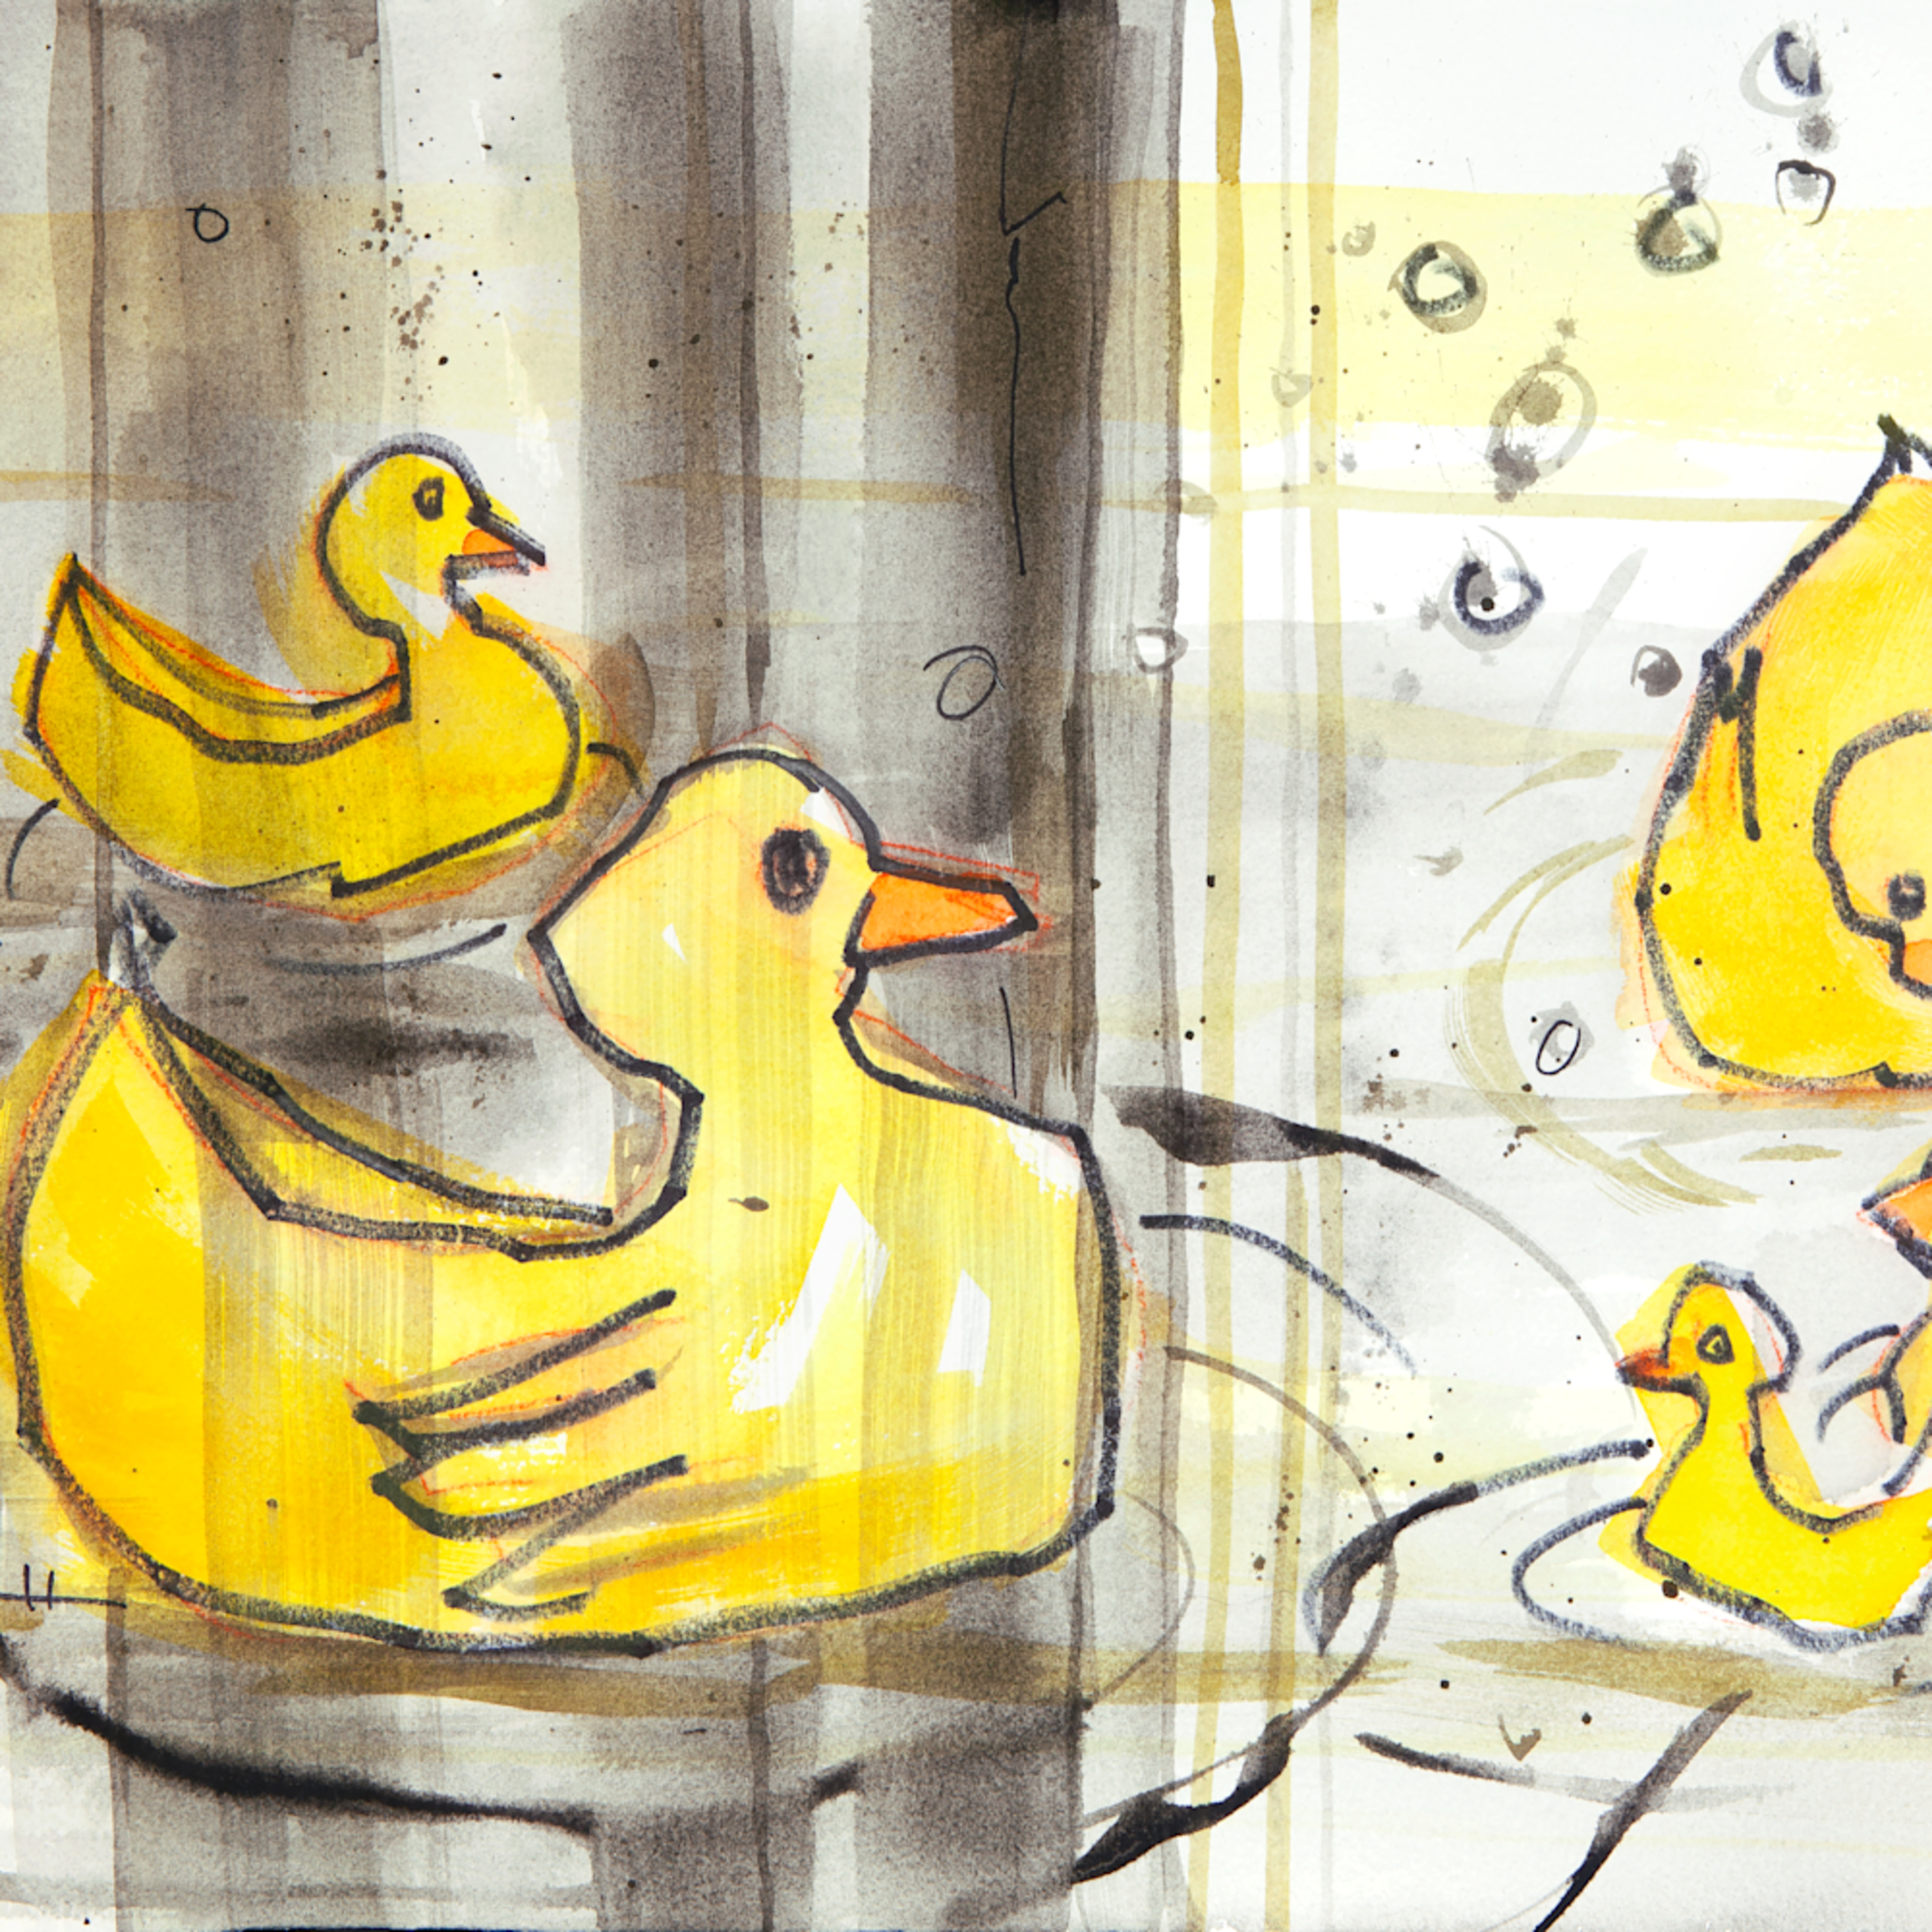 Duckies in bathtub with shower curtain wjnd7h